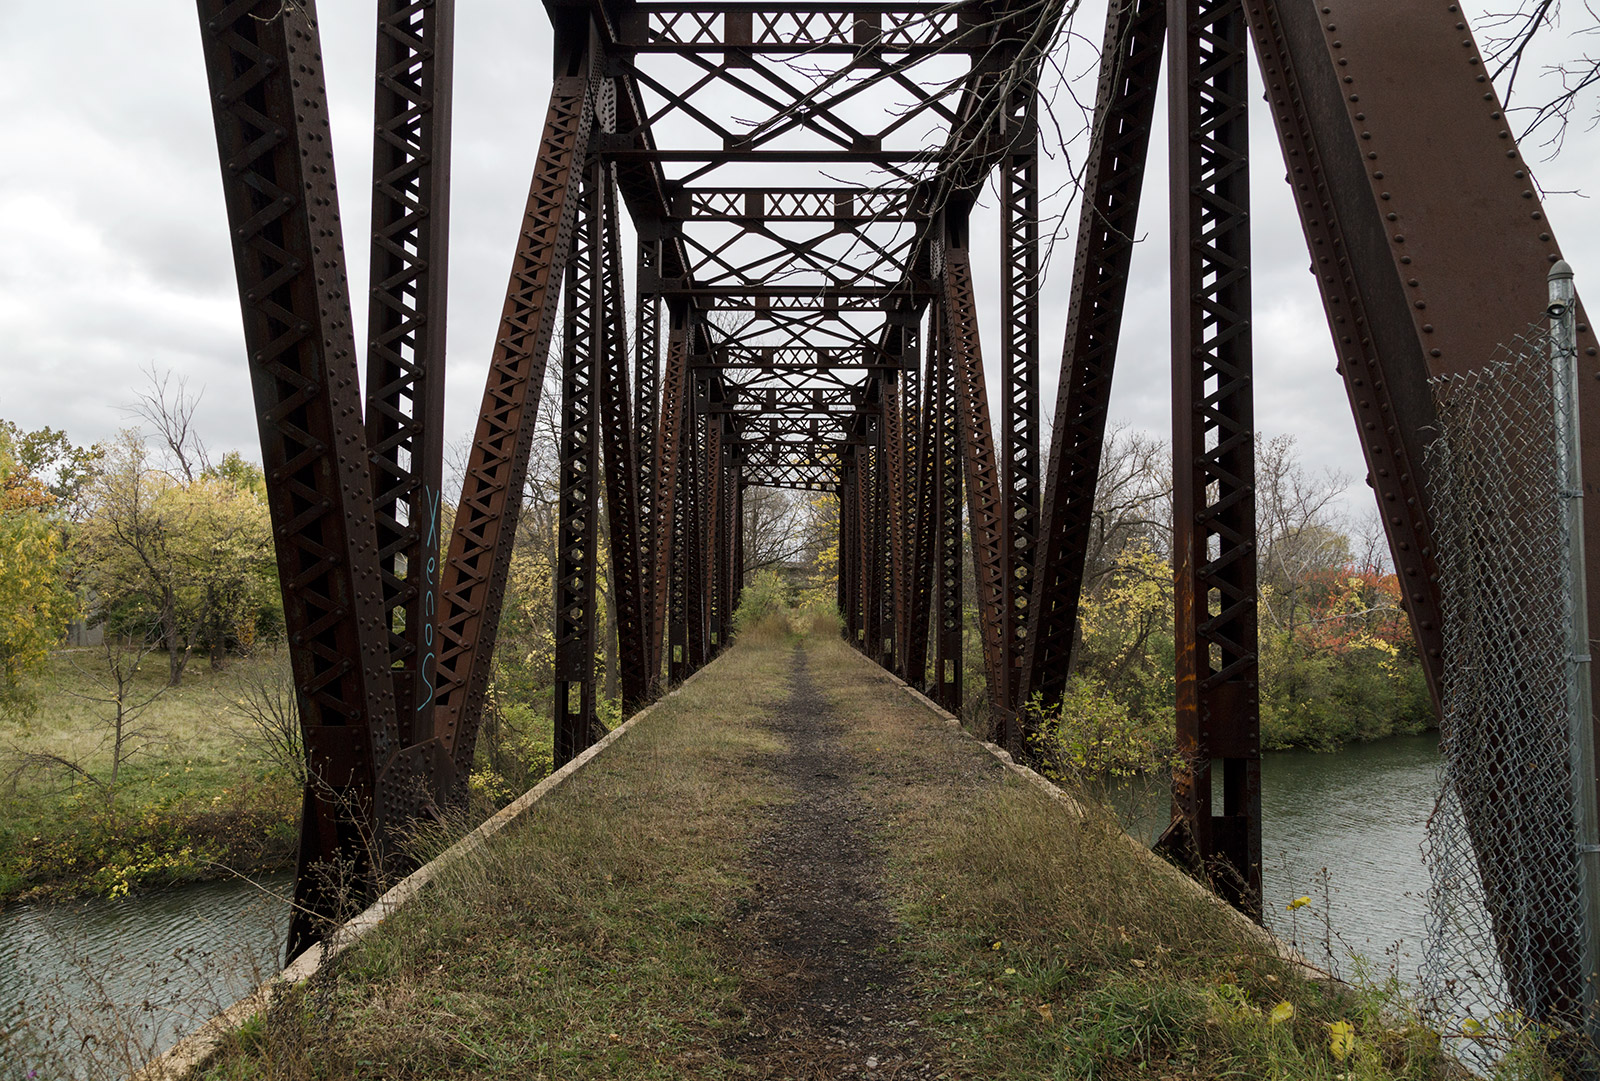 20141029. The Pennsylvania Railroad crossed the Erie Canal on th